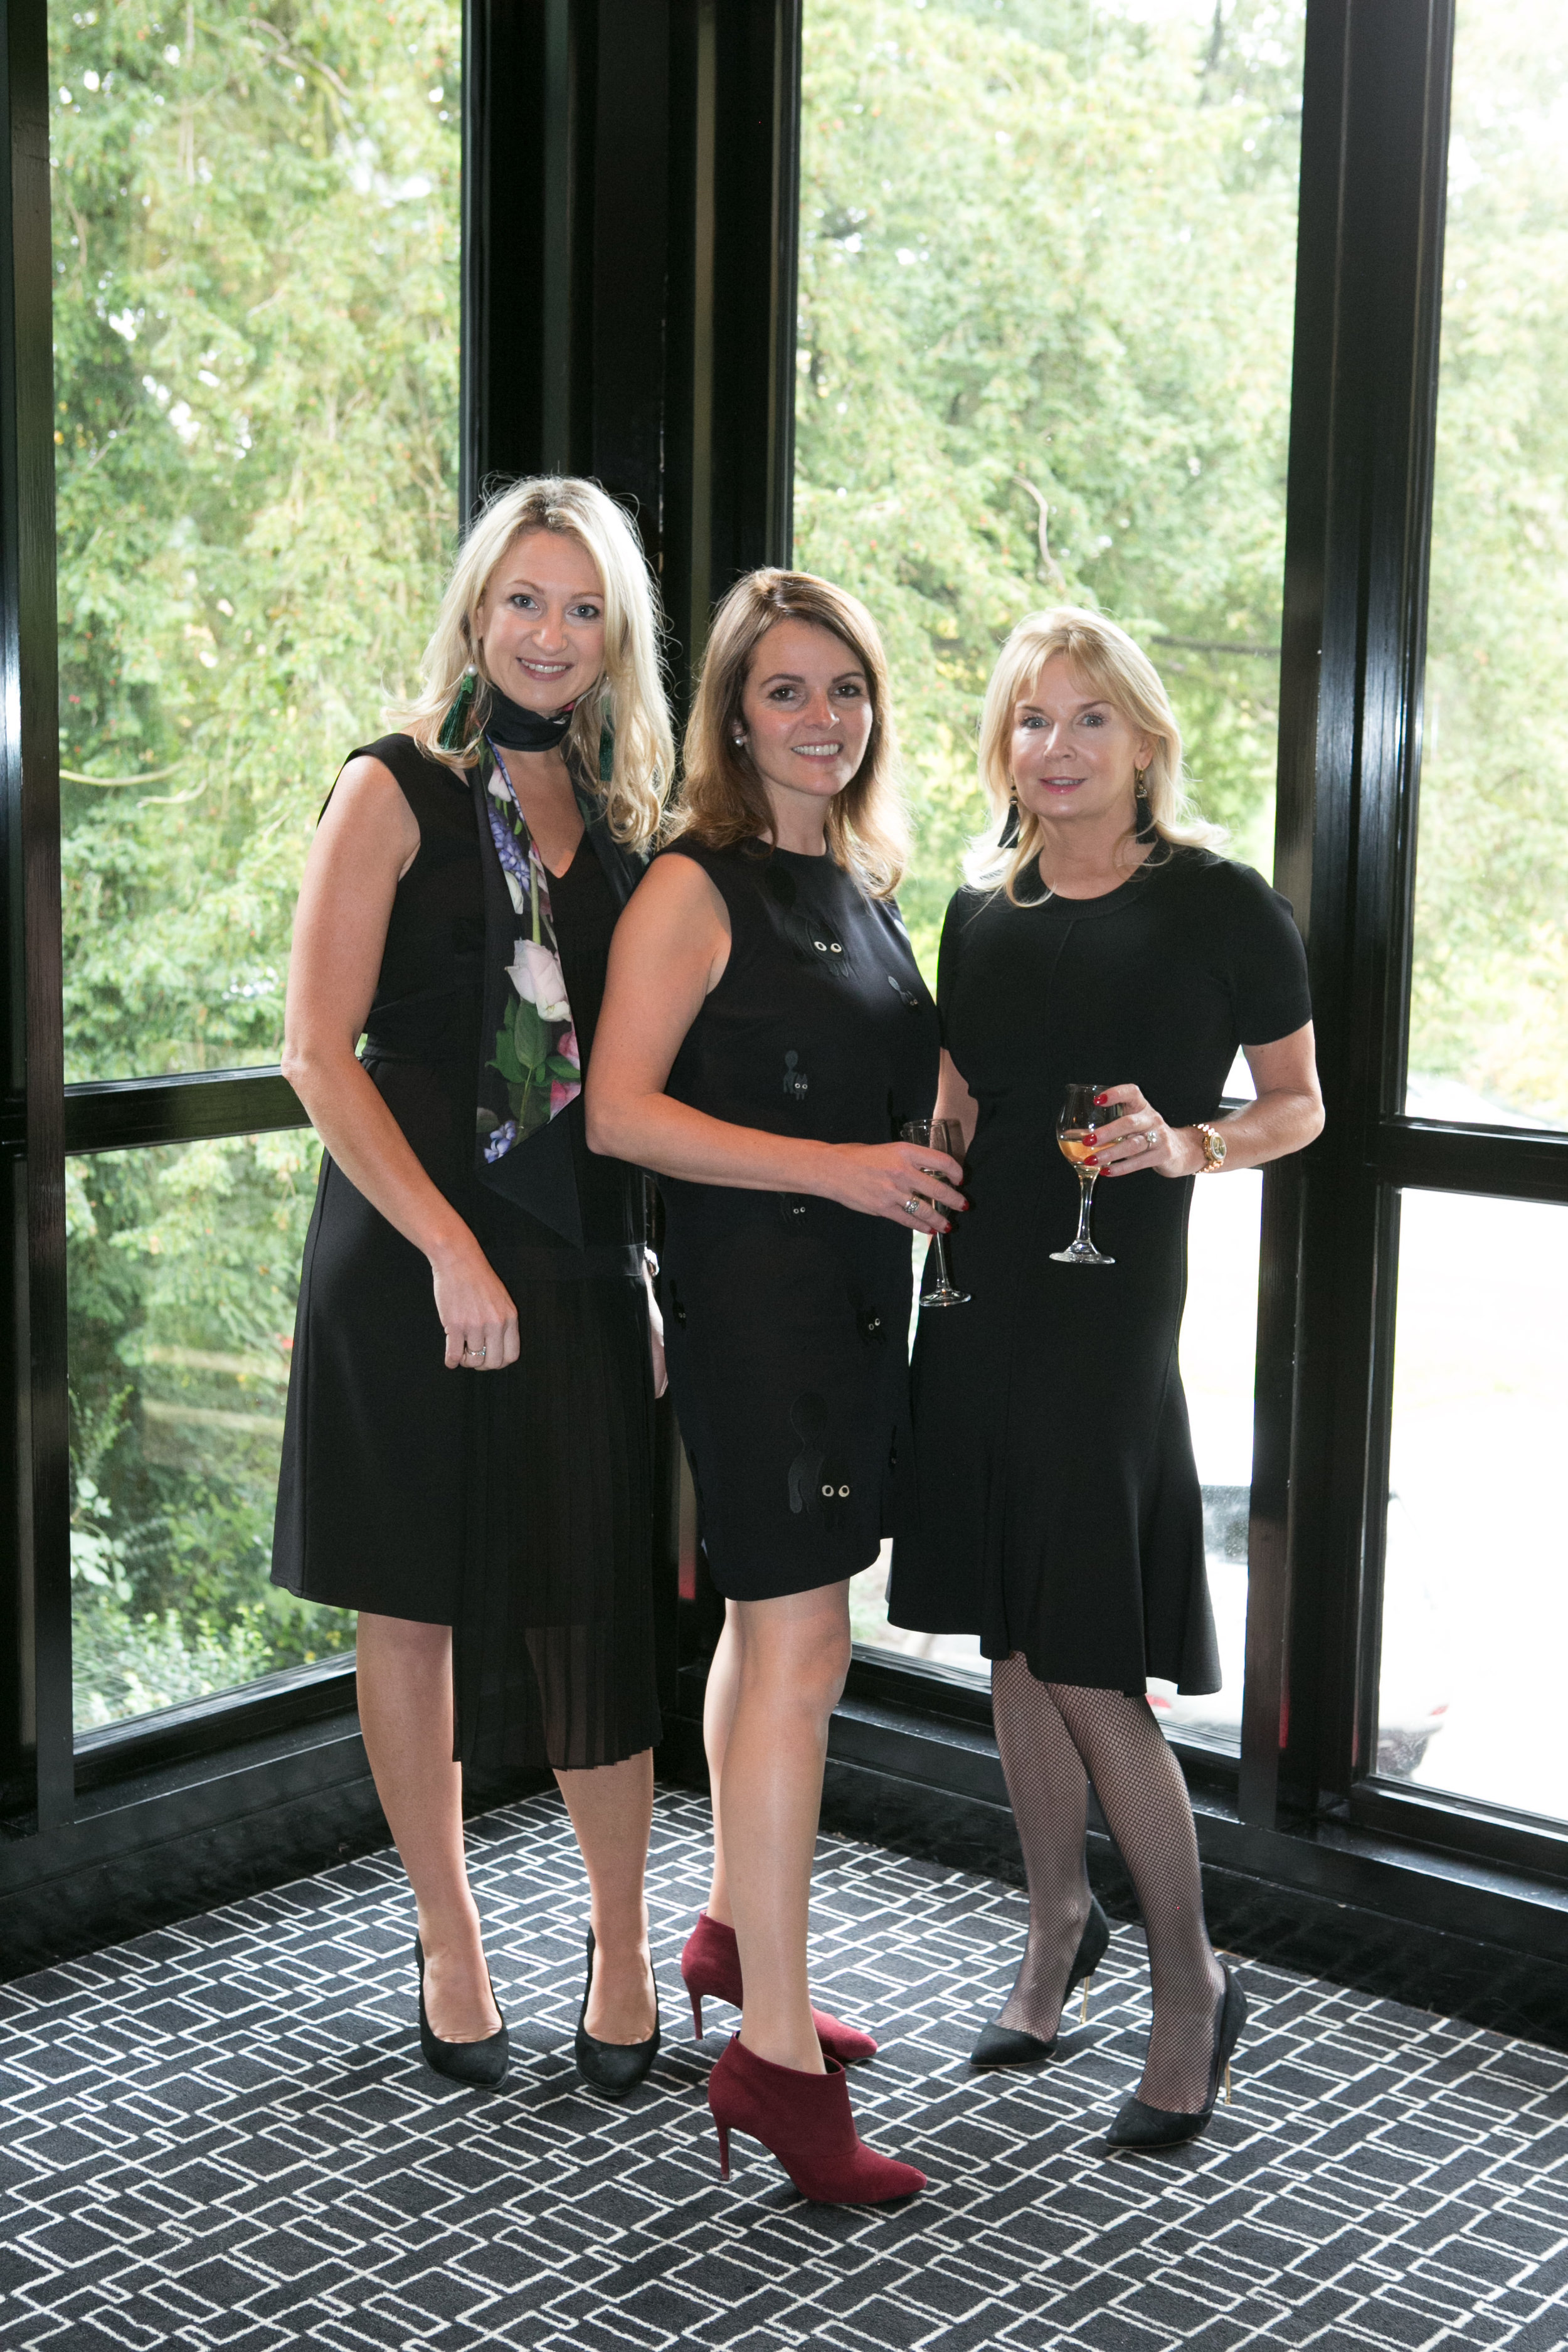 Renate Murphy, Rhona Abbey and Lorraine O'Riordan at the Annual Aer Lingus Autumn Lunch in aid of Cork ARC Cancer Support House.